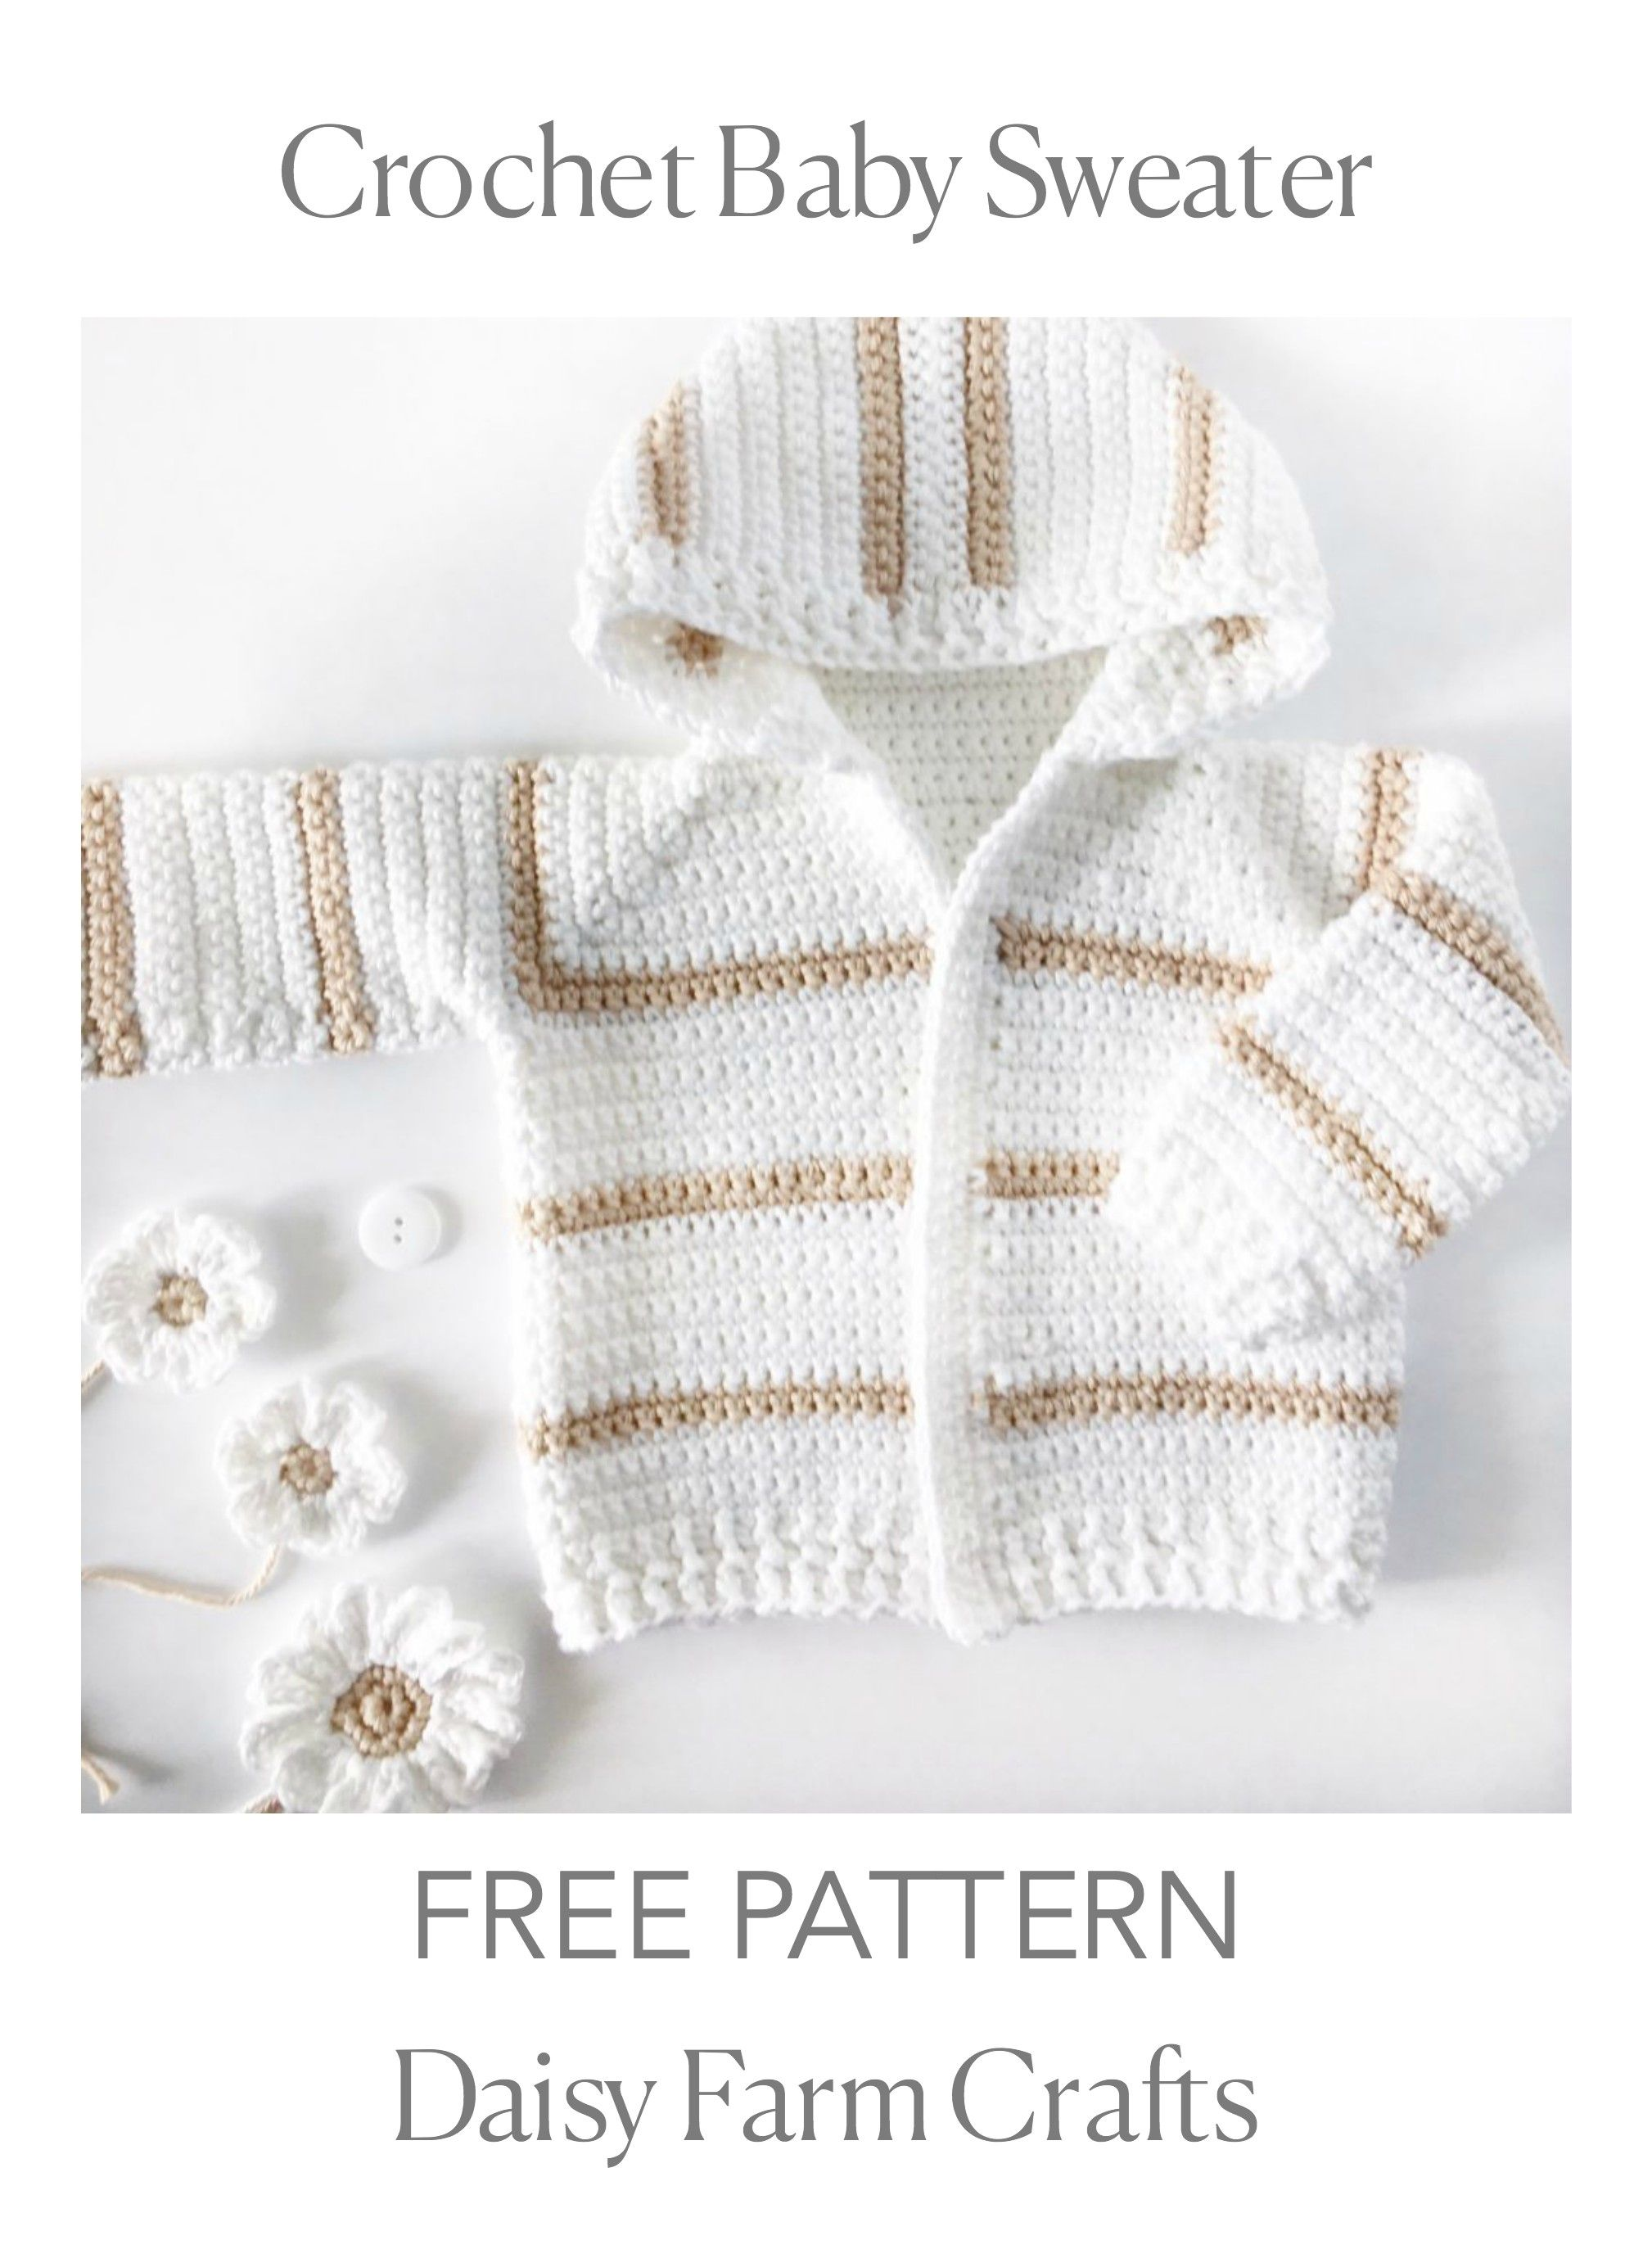 FREE PATTERN - Crochet Baby Sweater | Daisy Farm Crafts | Pinterest ...